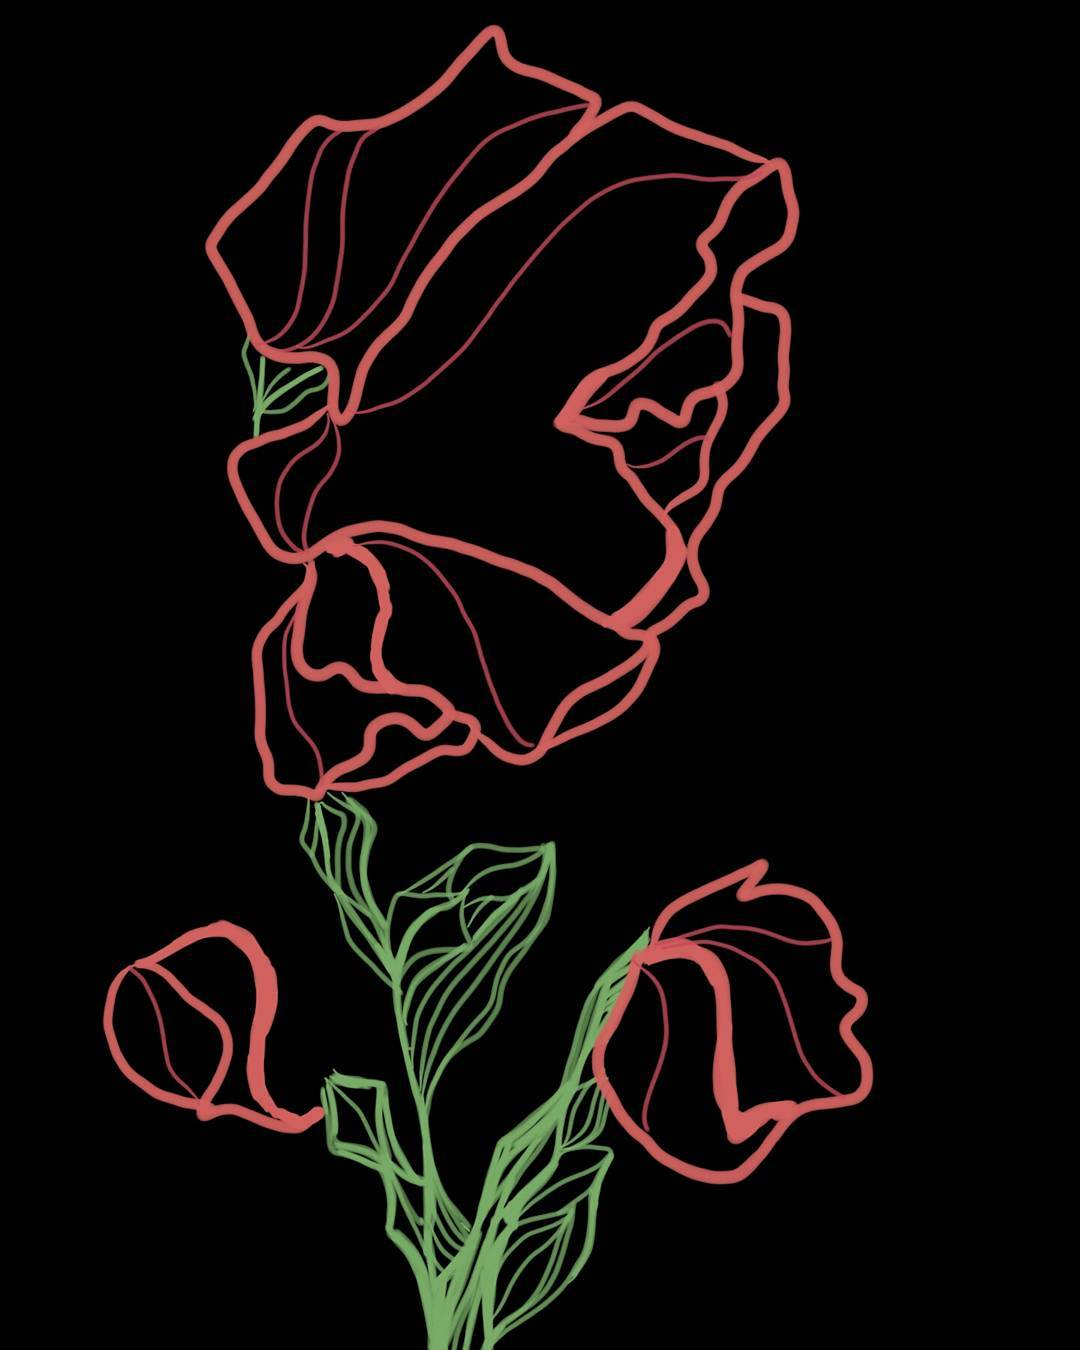 Neon Rose - Digital Drawing